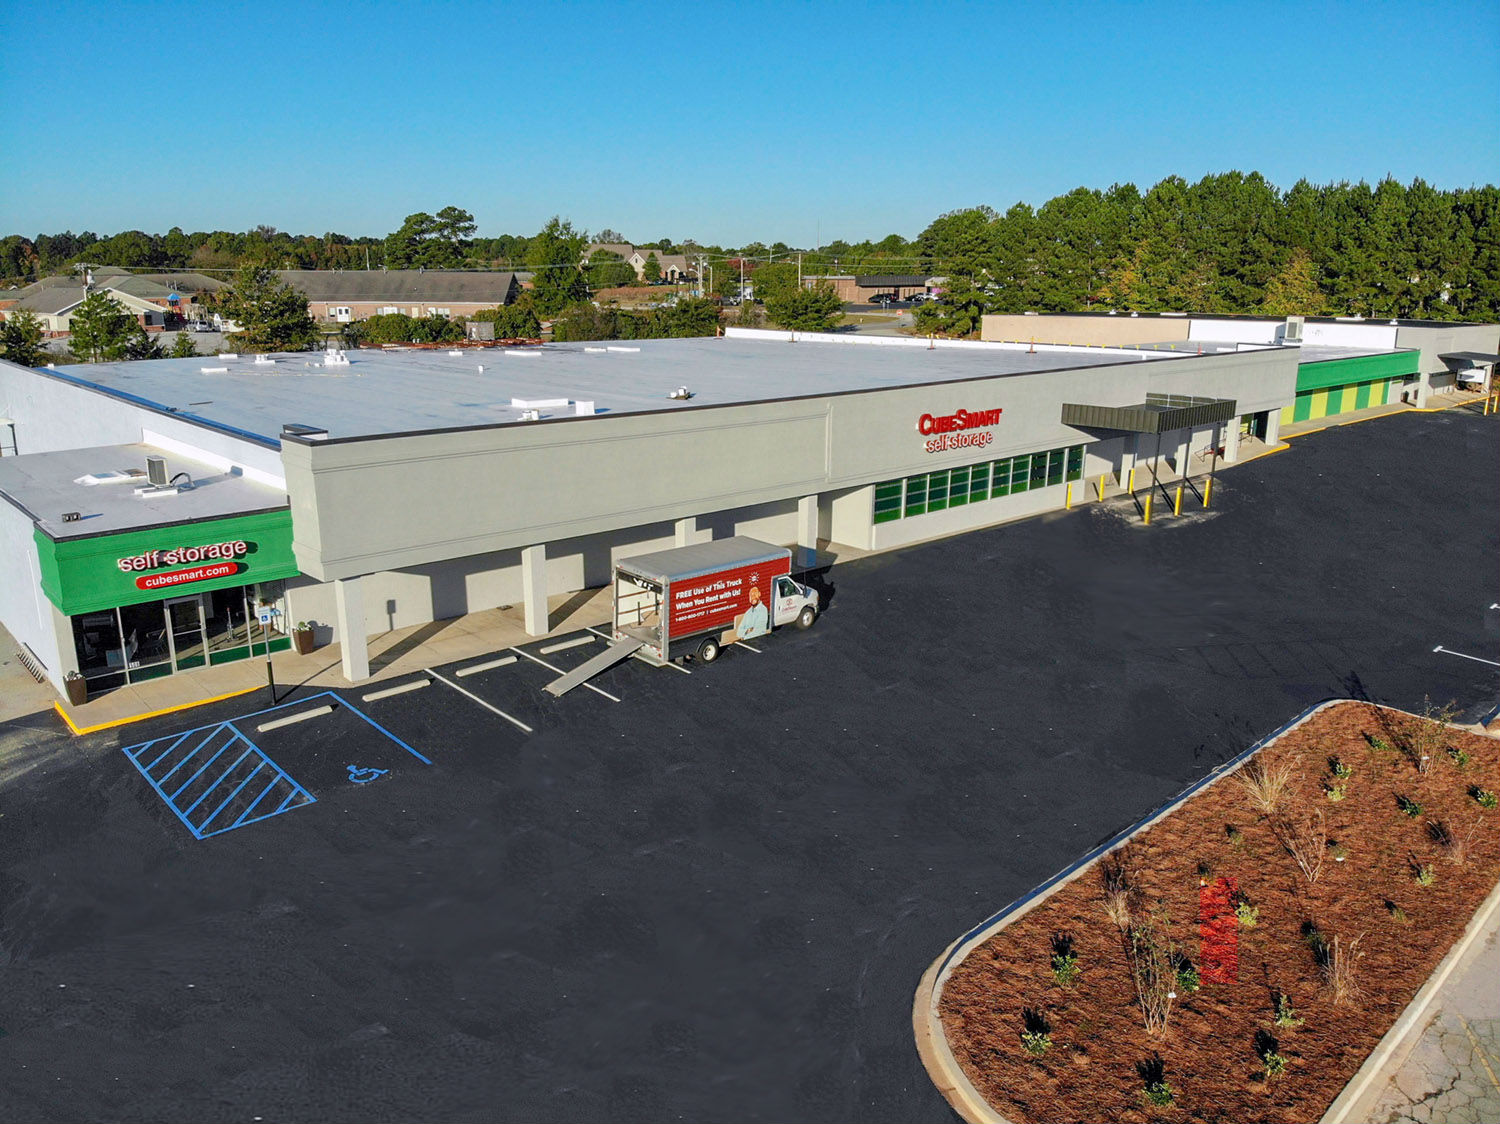 CubeSmart in Greenwood features 300 storage units ranging from 25 to 300 square feet. (Photo/Provided)